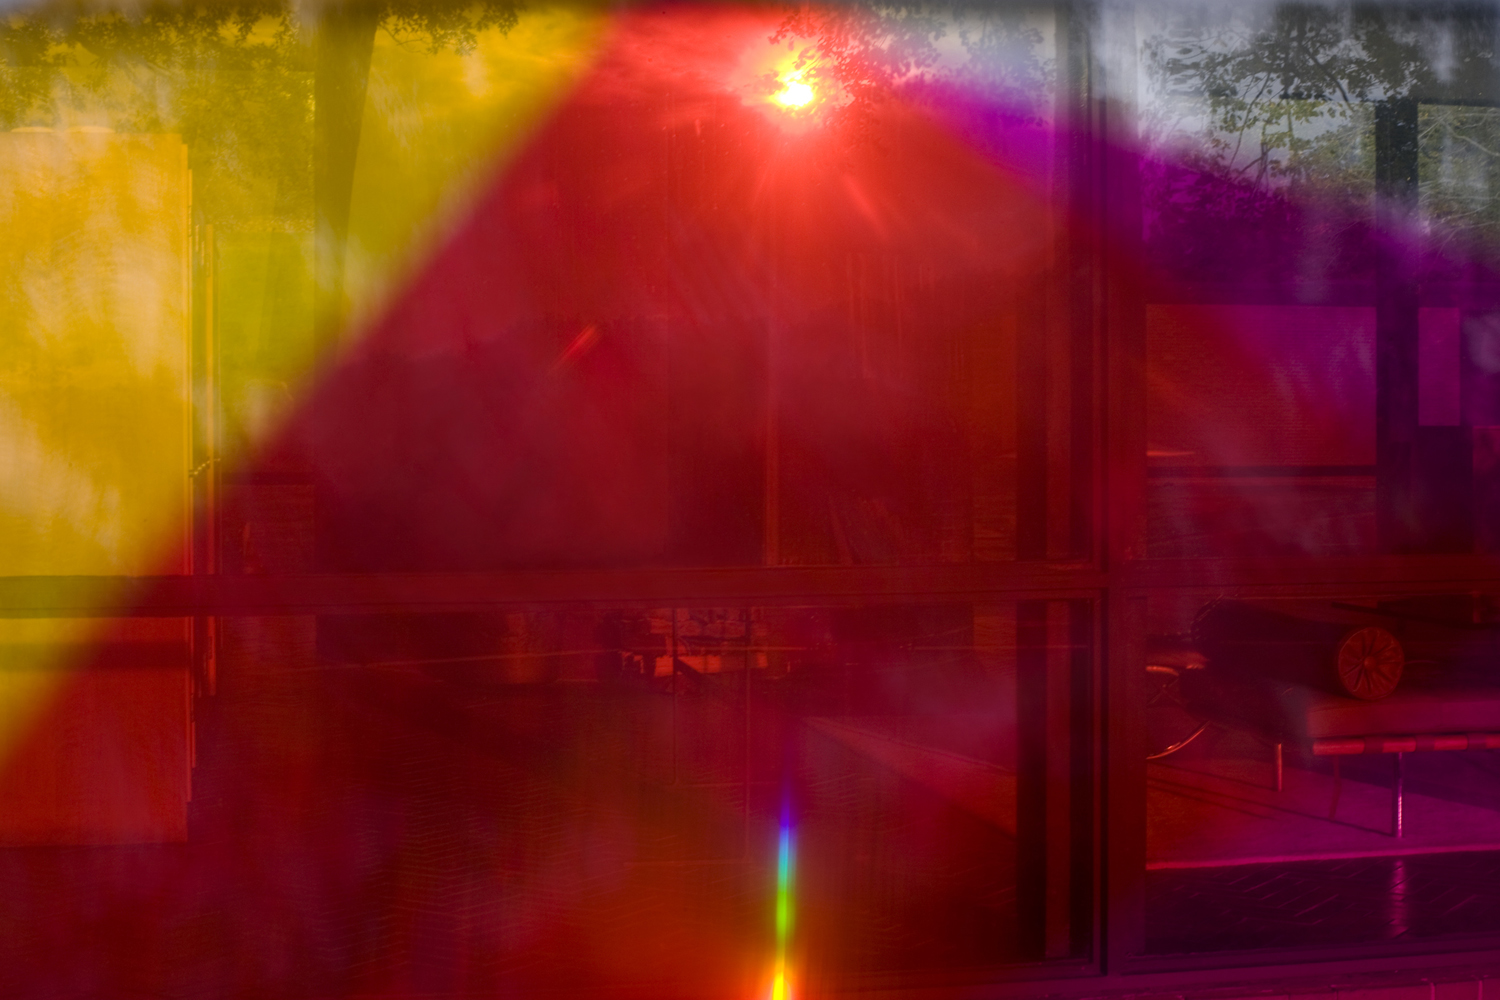 James Welling, Glass House 9818 (2009); imag e © James Welling, courtesy of the artist